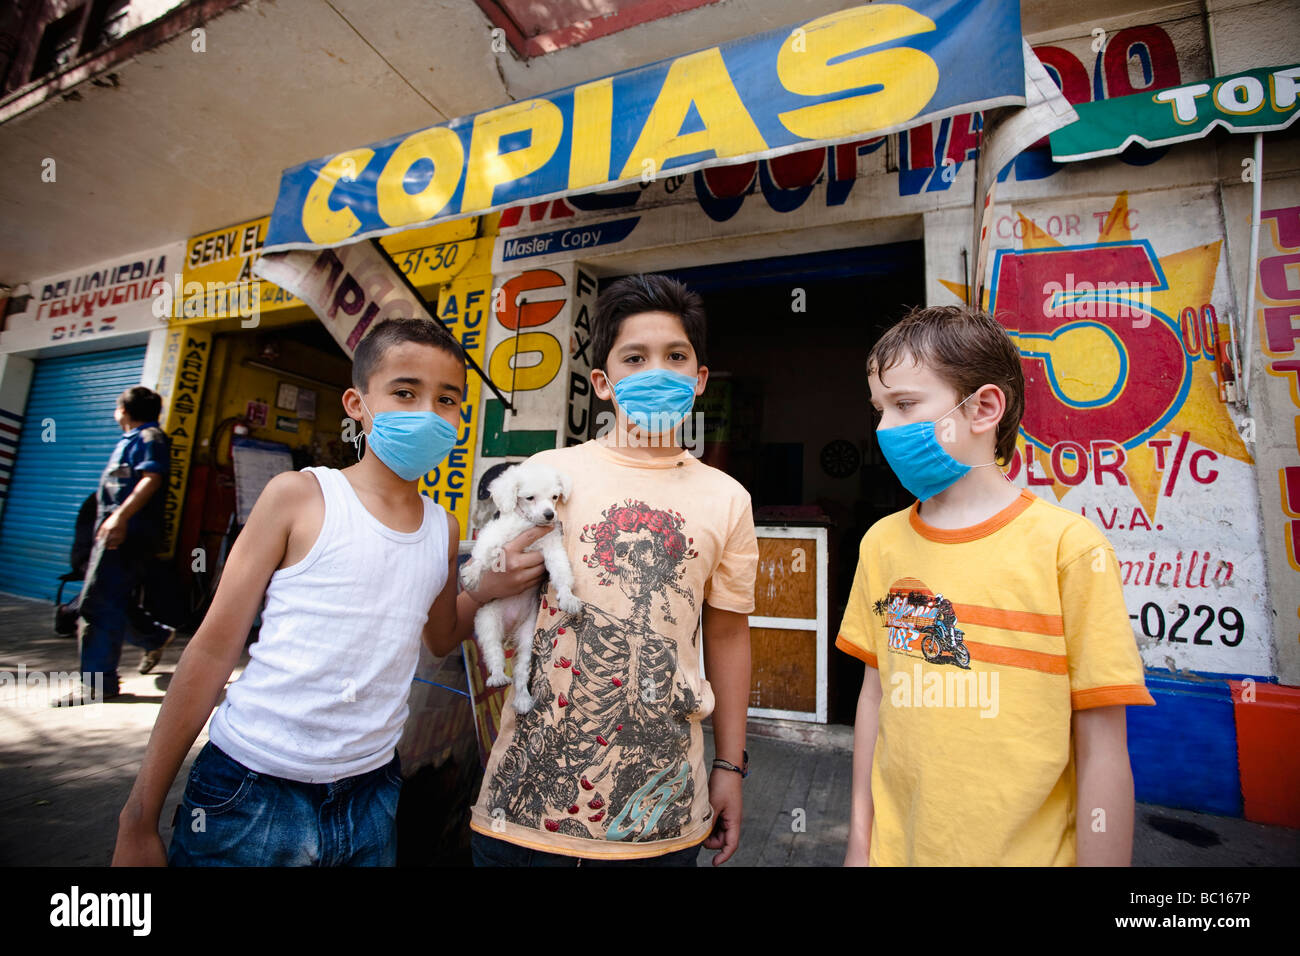 Three kids wearing masks holding a small puppy in the street during the swine flu epidemic in Mexico city, DF, Mexico. - Stock Image